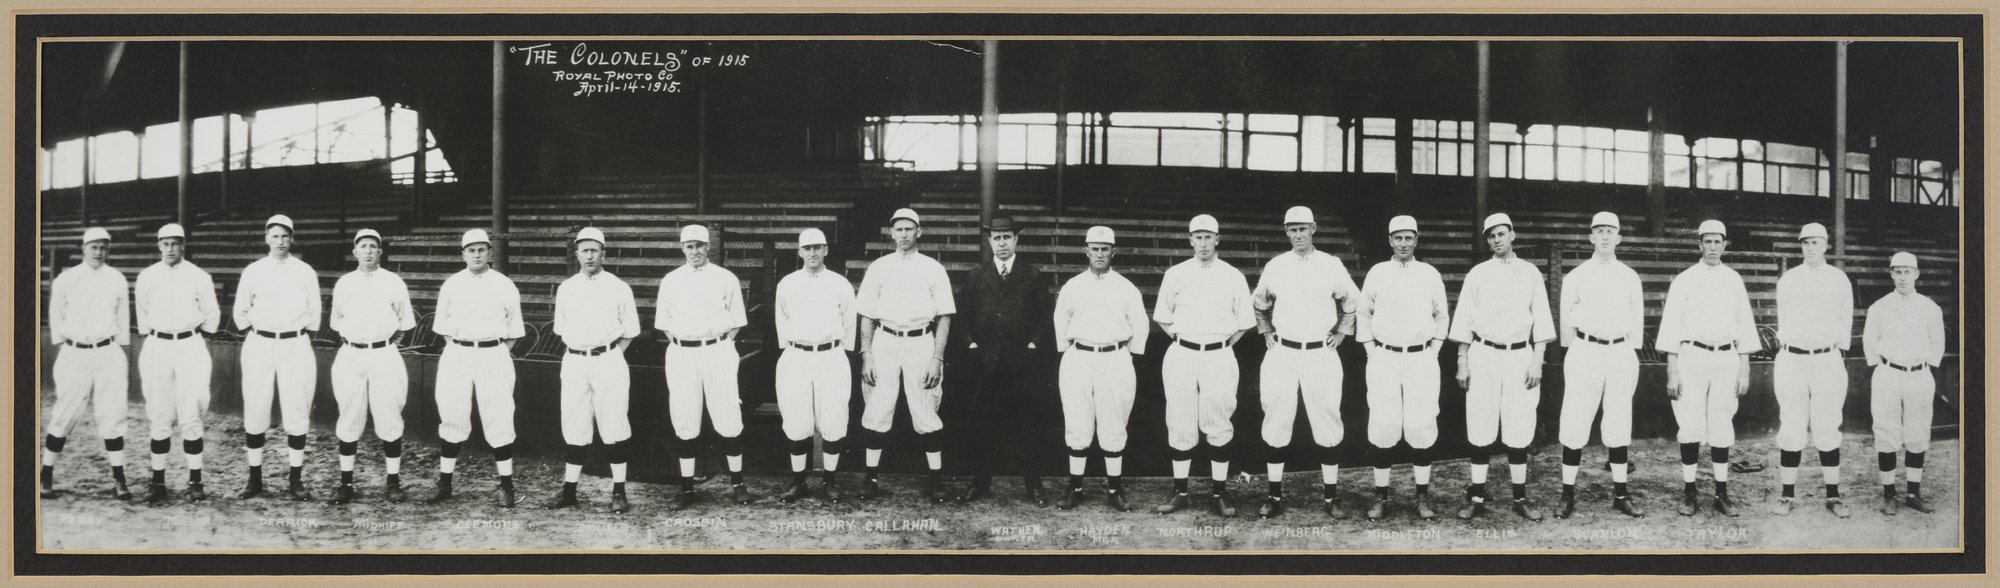 Louisville Colonels baseball team, Louisville, Kentucky